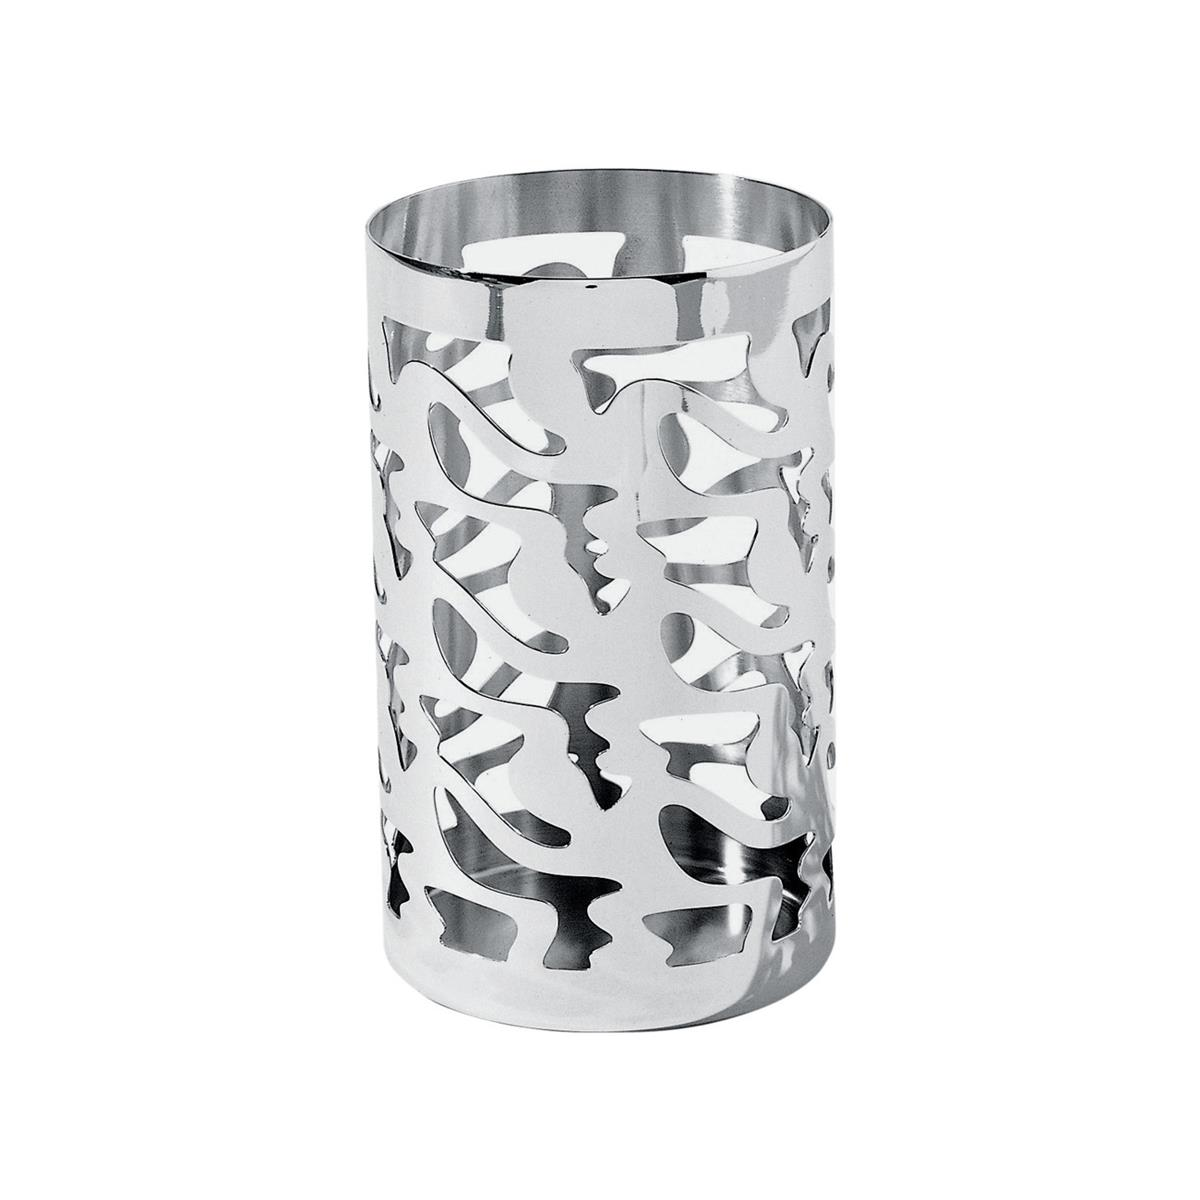 Alessi-Ethno Perforated breadstick holder in 18/10 stainless steel mirror polished